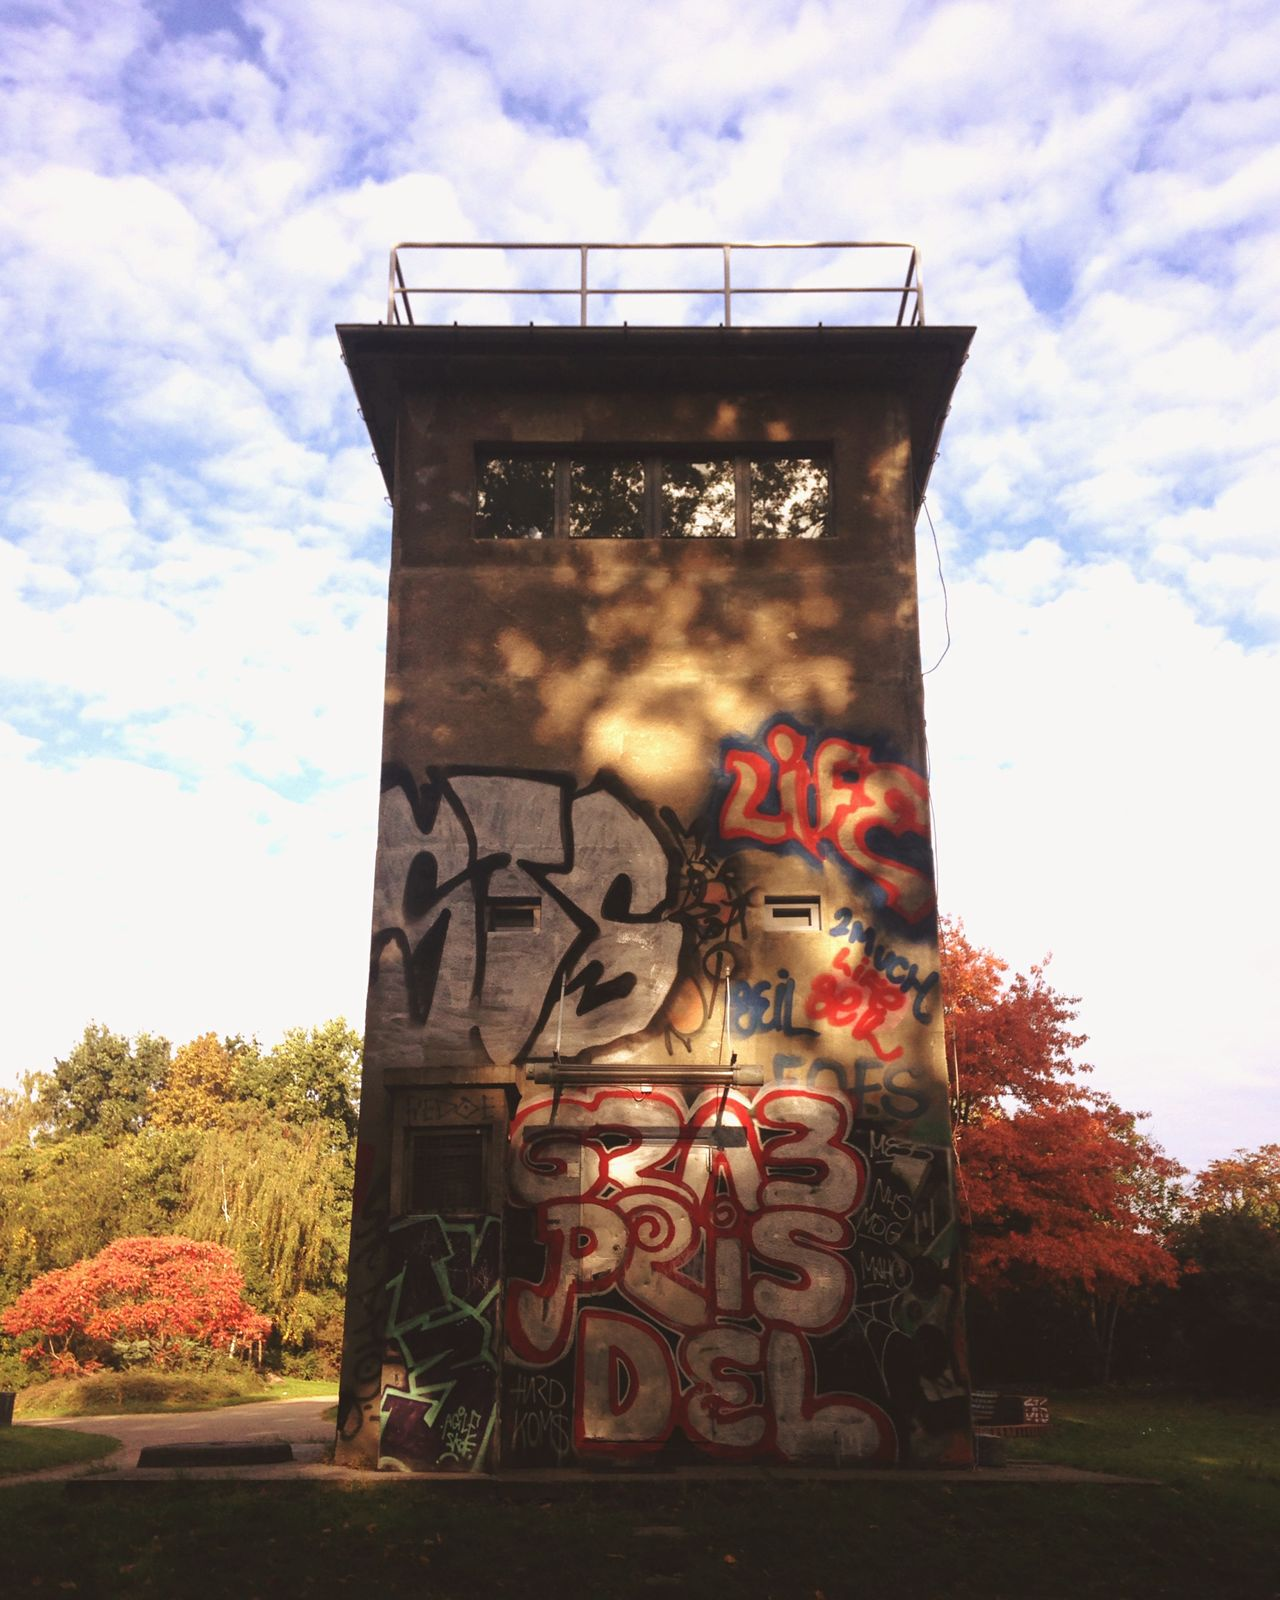 History in colour. At The Park Watchtower Historical Building Colors Autumn Trees Graffiti Early Morning Afterparty Hidden In Plain Sight